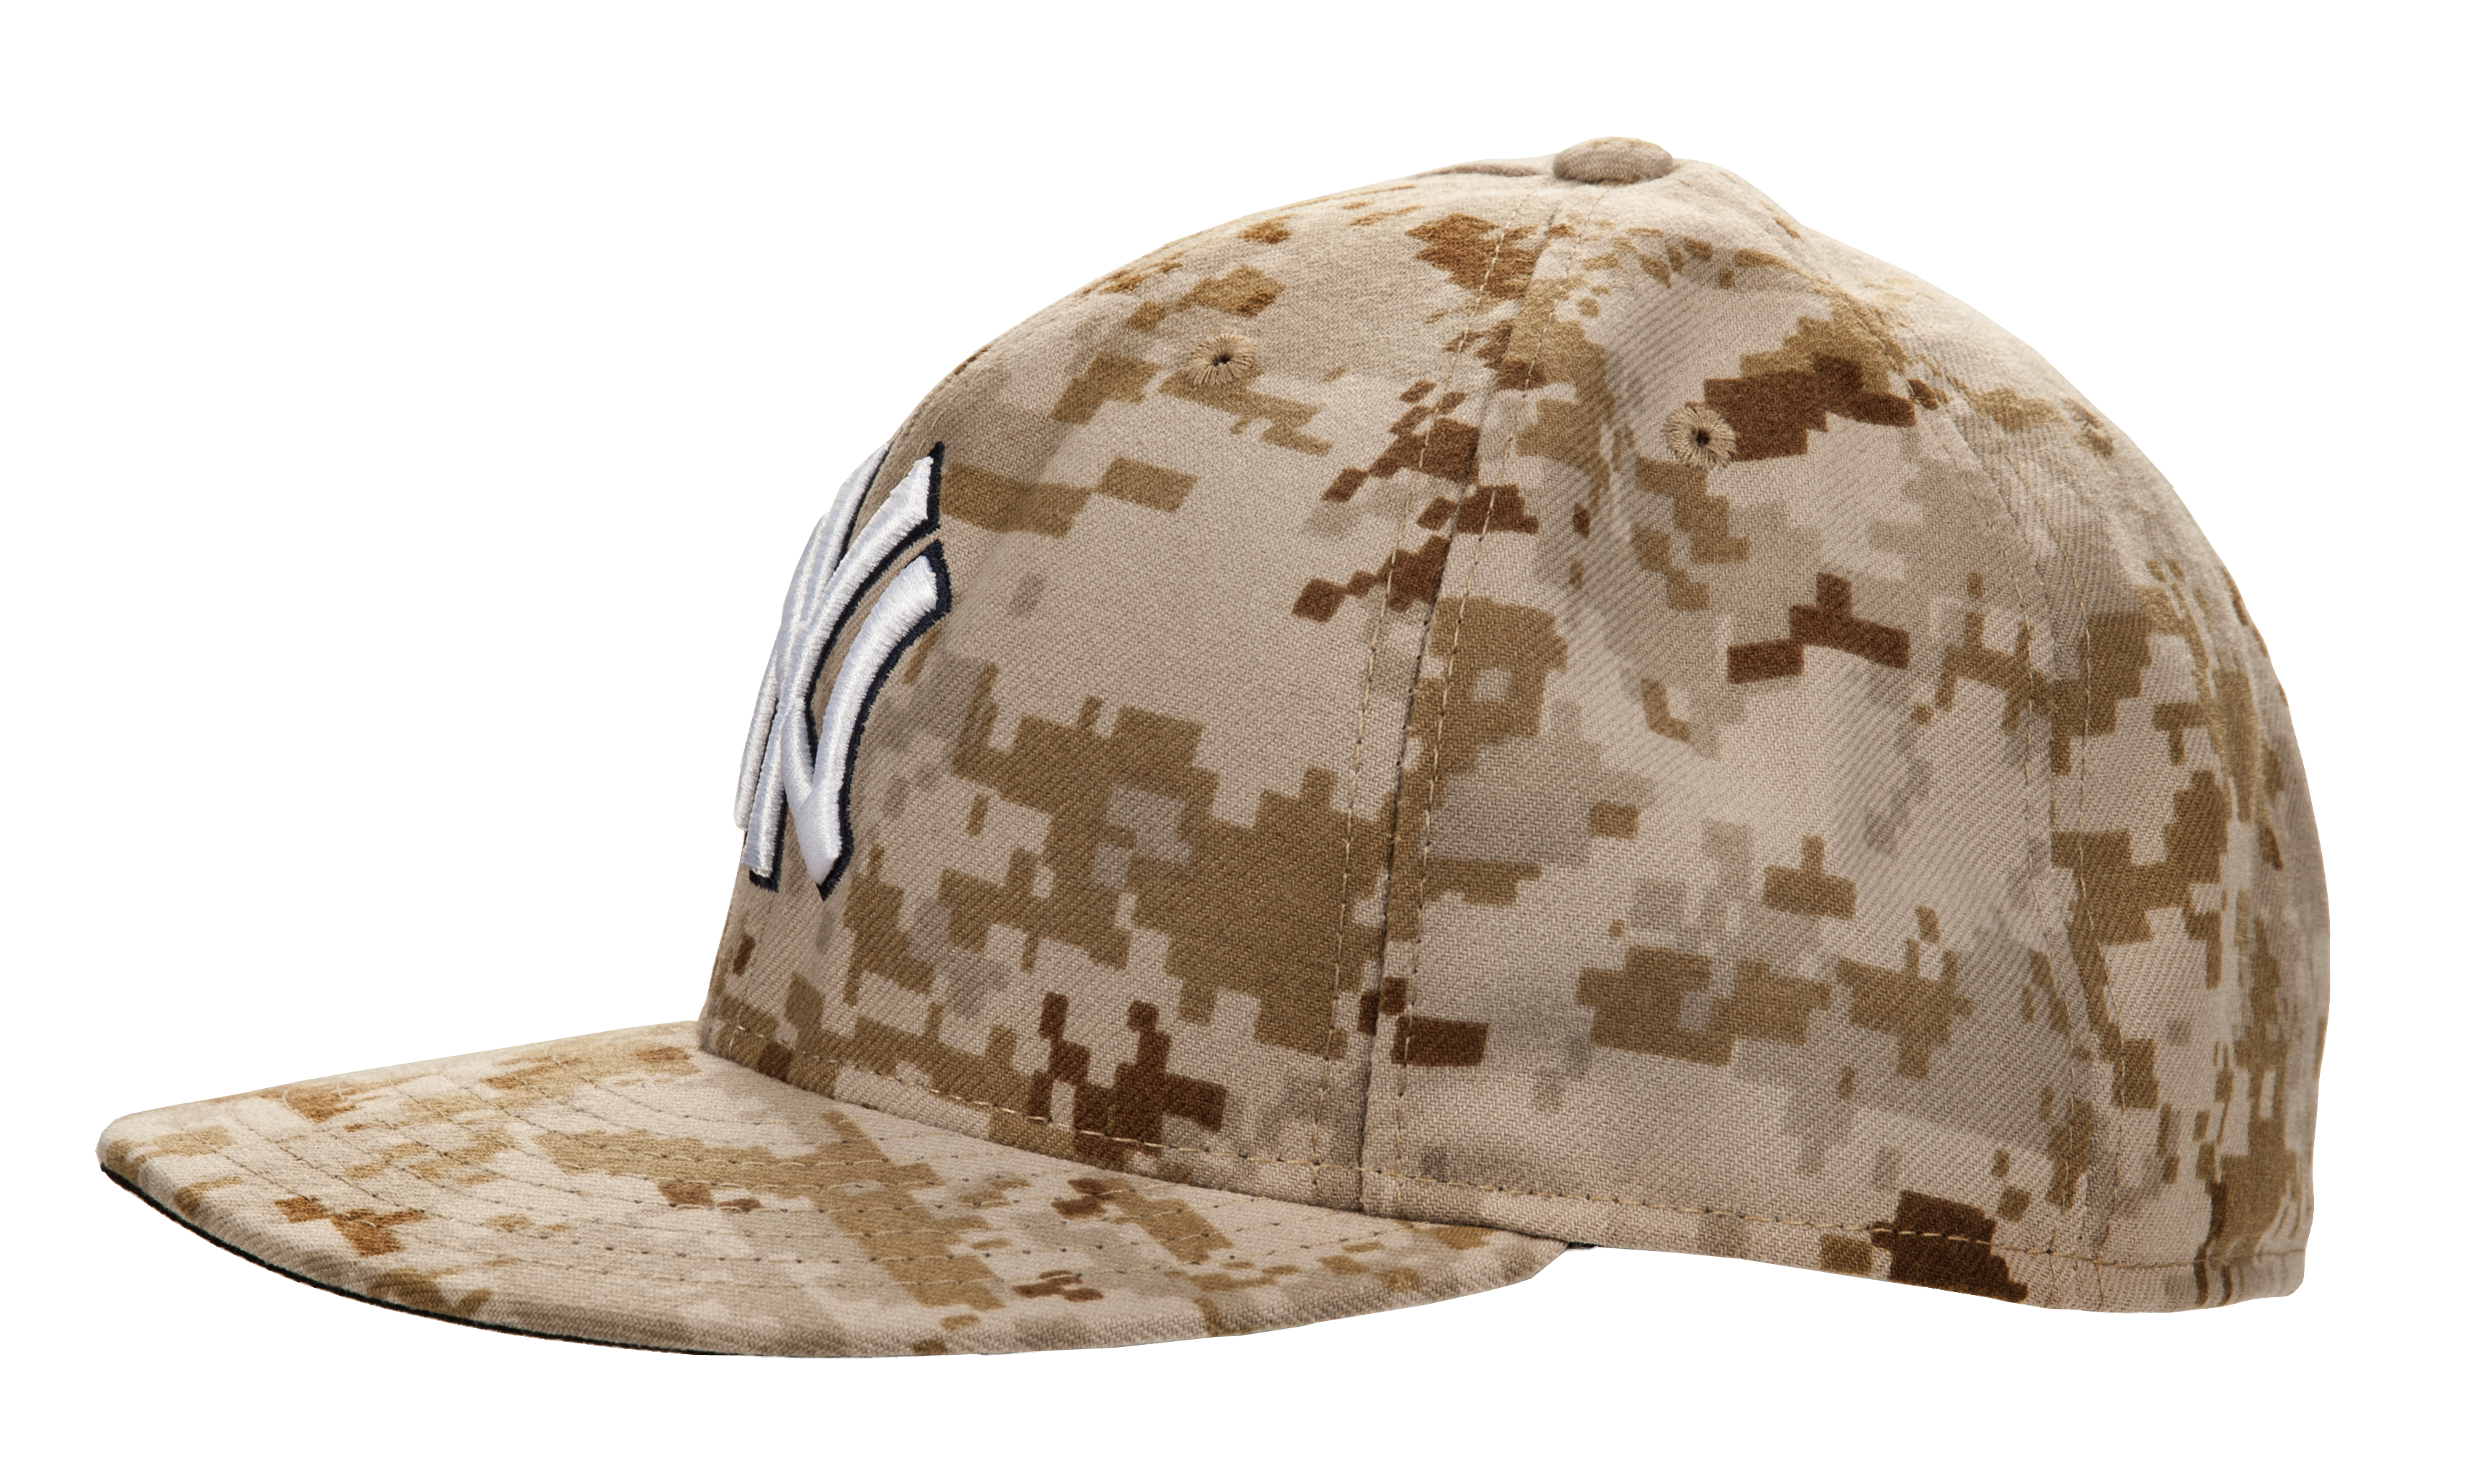 384f2183473 Lot Detail - 2014 Mariano Rivera Game Worn New York Yankees Memorial Day  Camouflage Cap (MLB Authenticated)